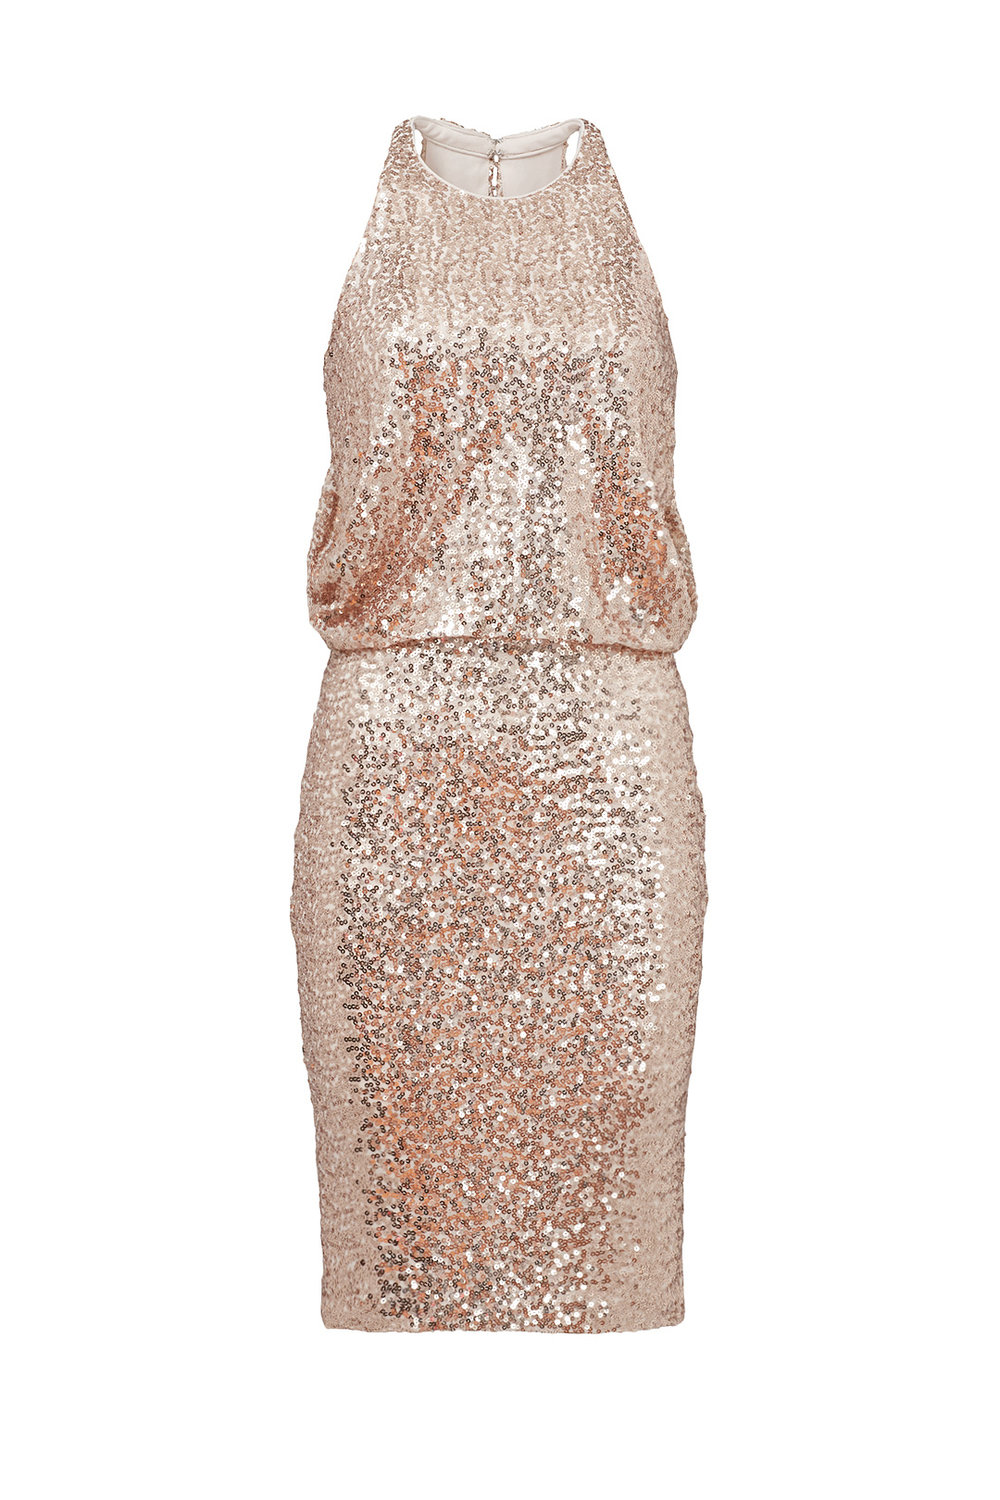 Gold Sequined Dress.jpg